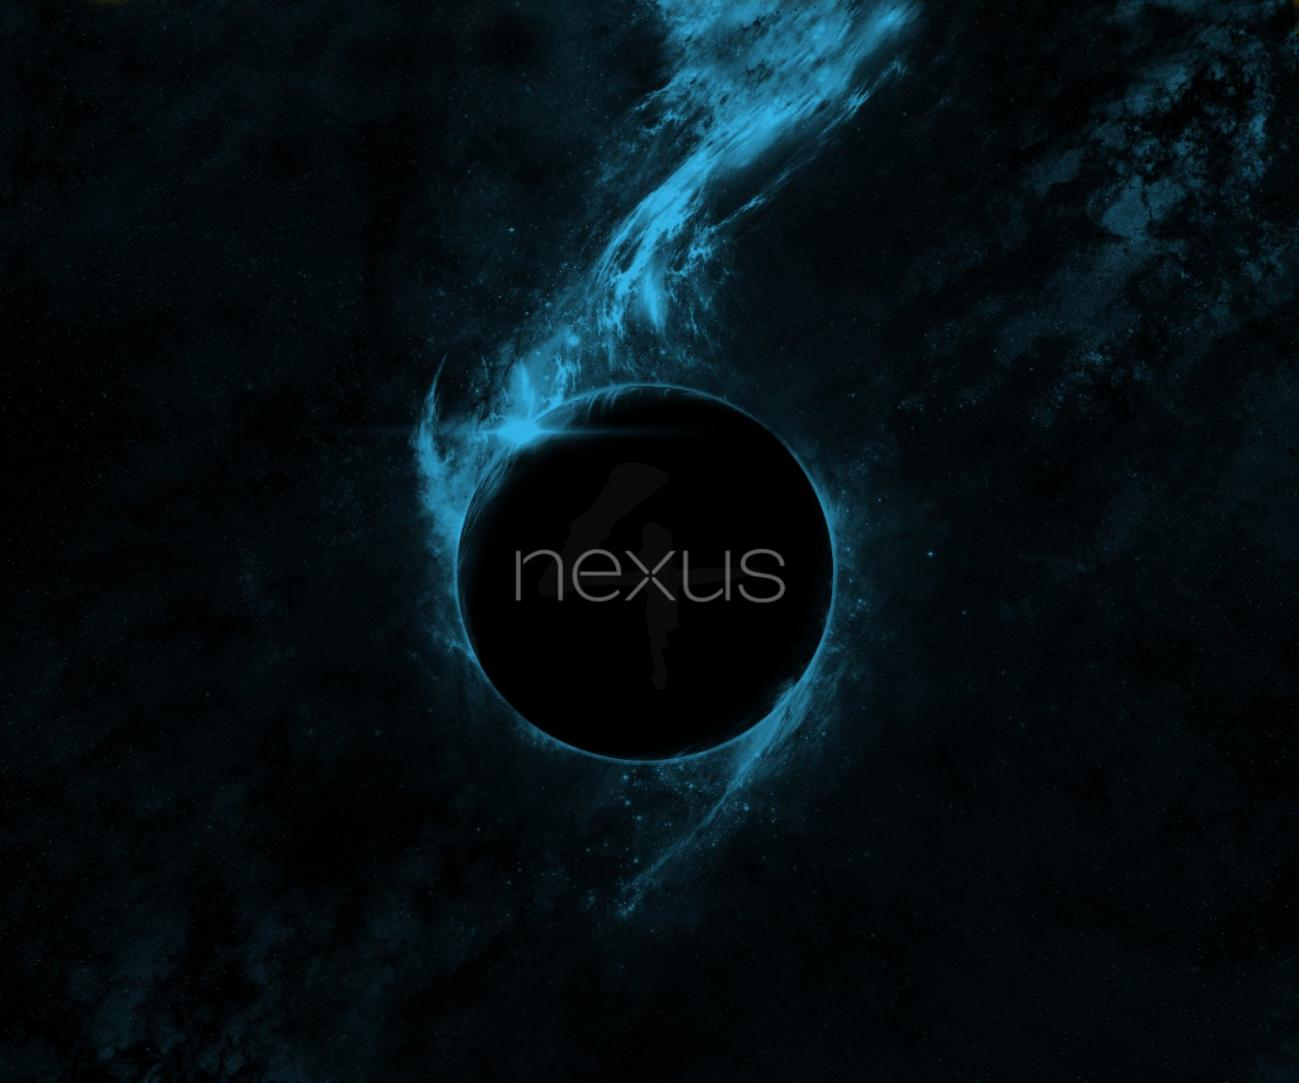 Nexus 5 background image size - Top Nexus 4 Hd Wallpapers Imghd Browse And Download Free Images